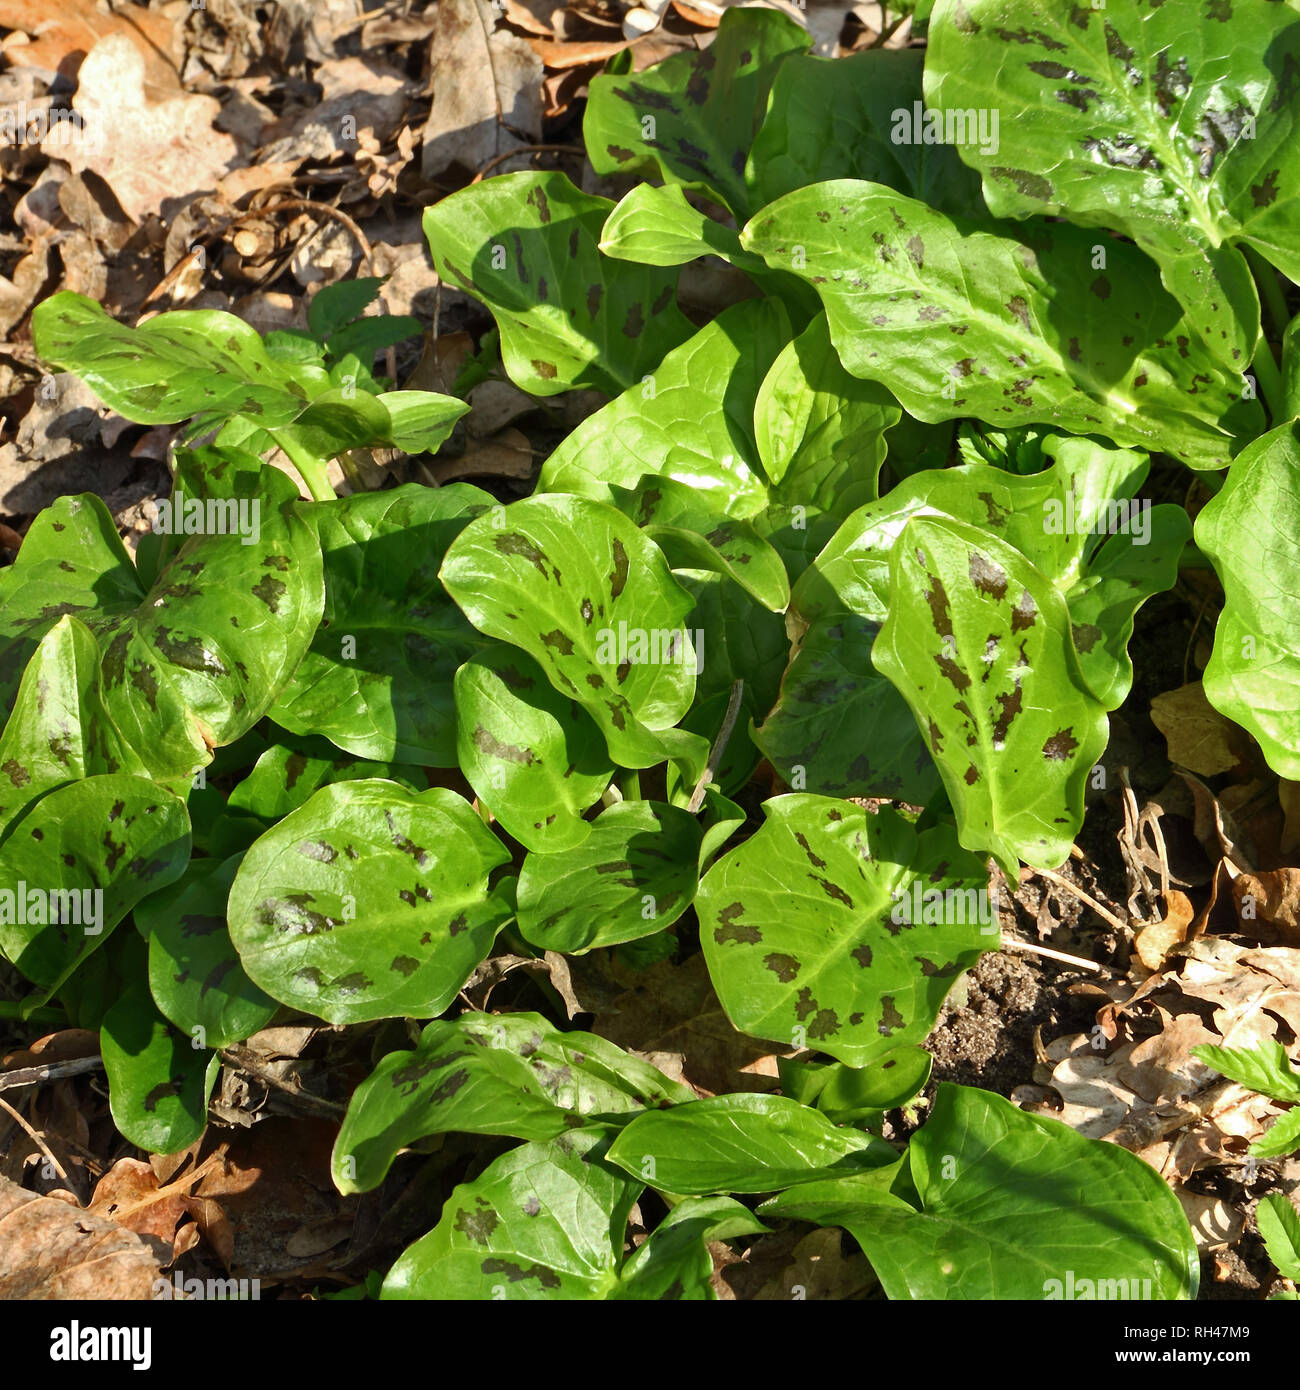 Young leaves of Arum maculatum in early spring - Stock Image